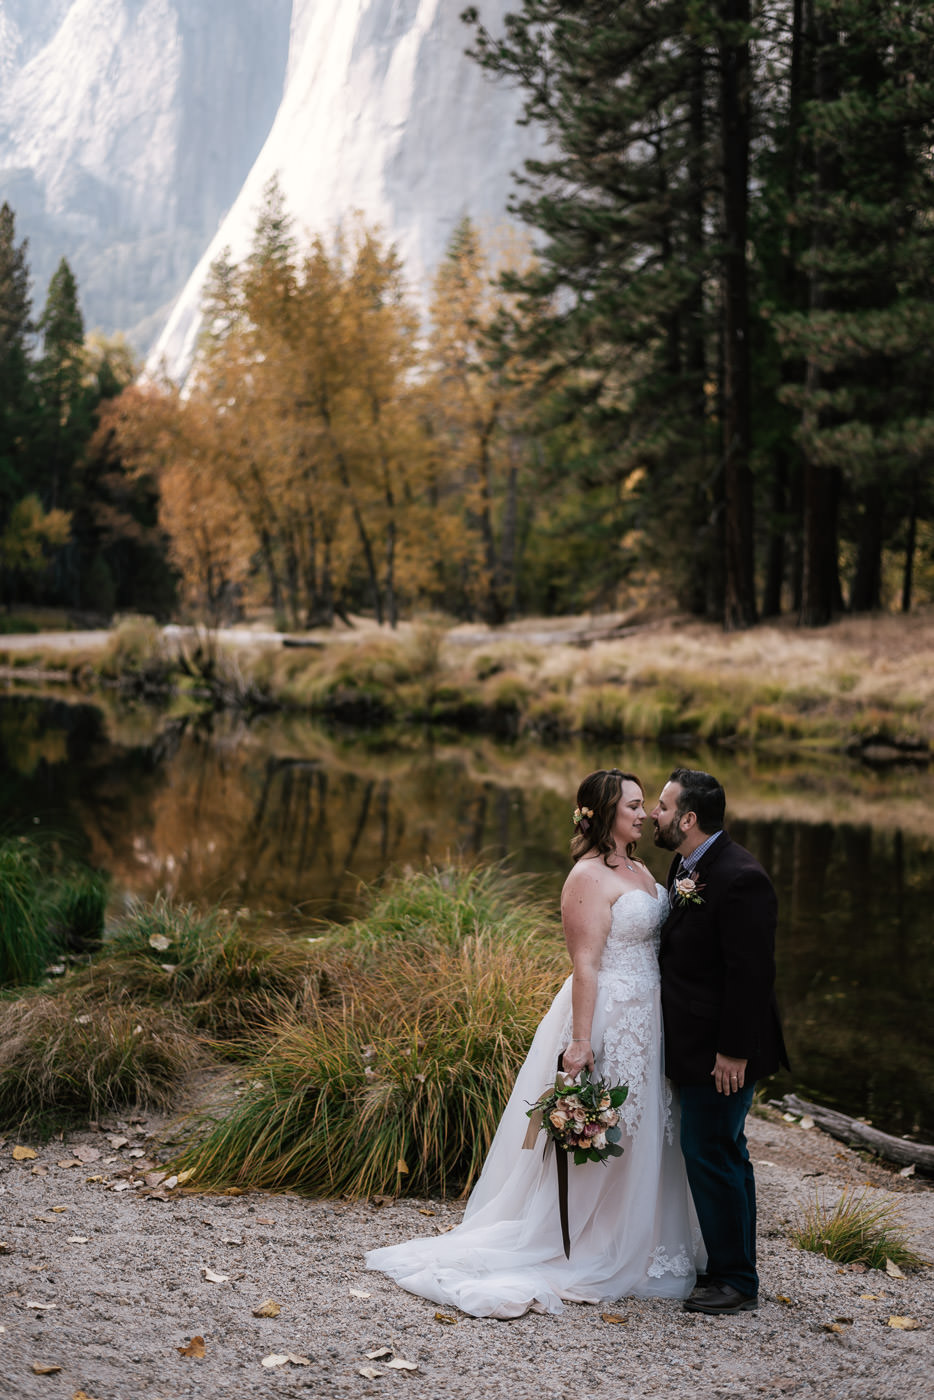 cathedral-beach-elopement-ceremony-yosemite-21.jpg